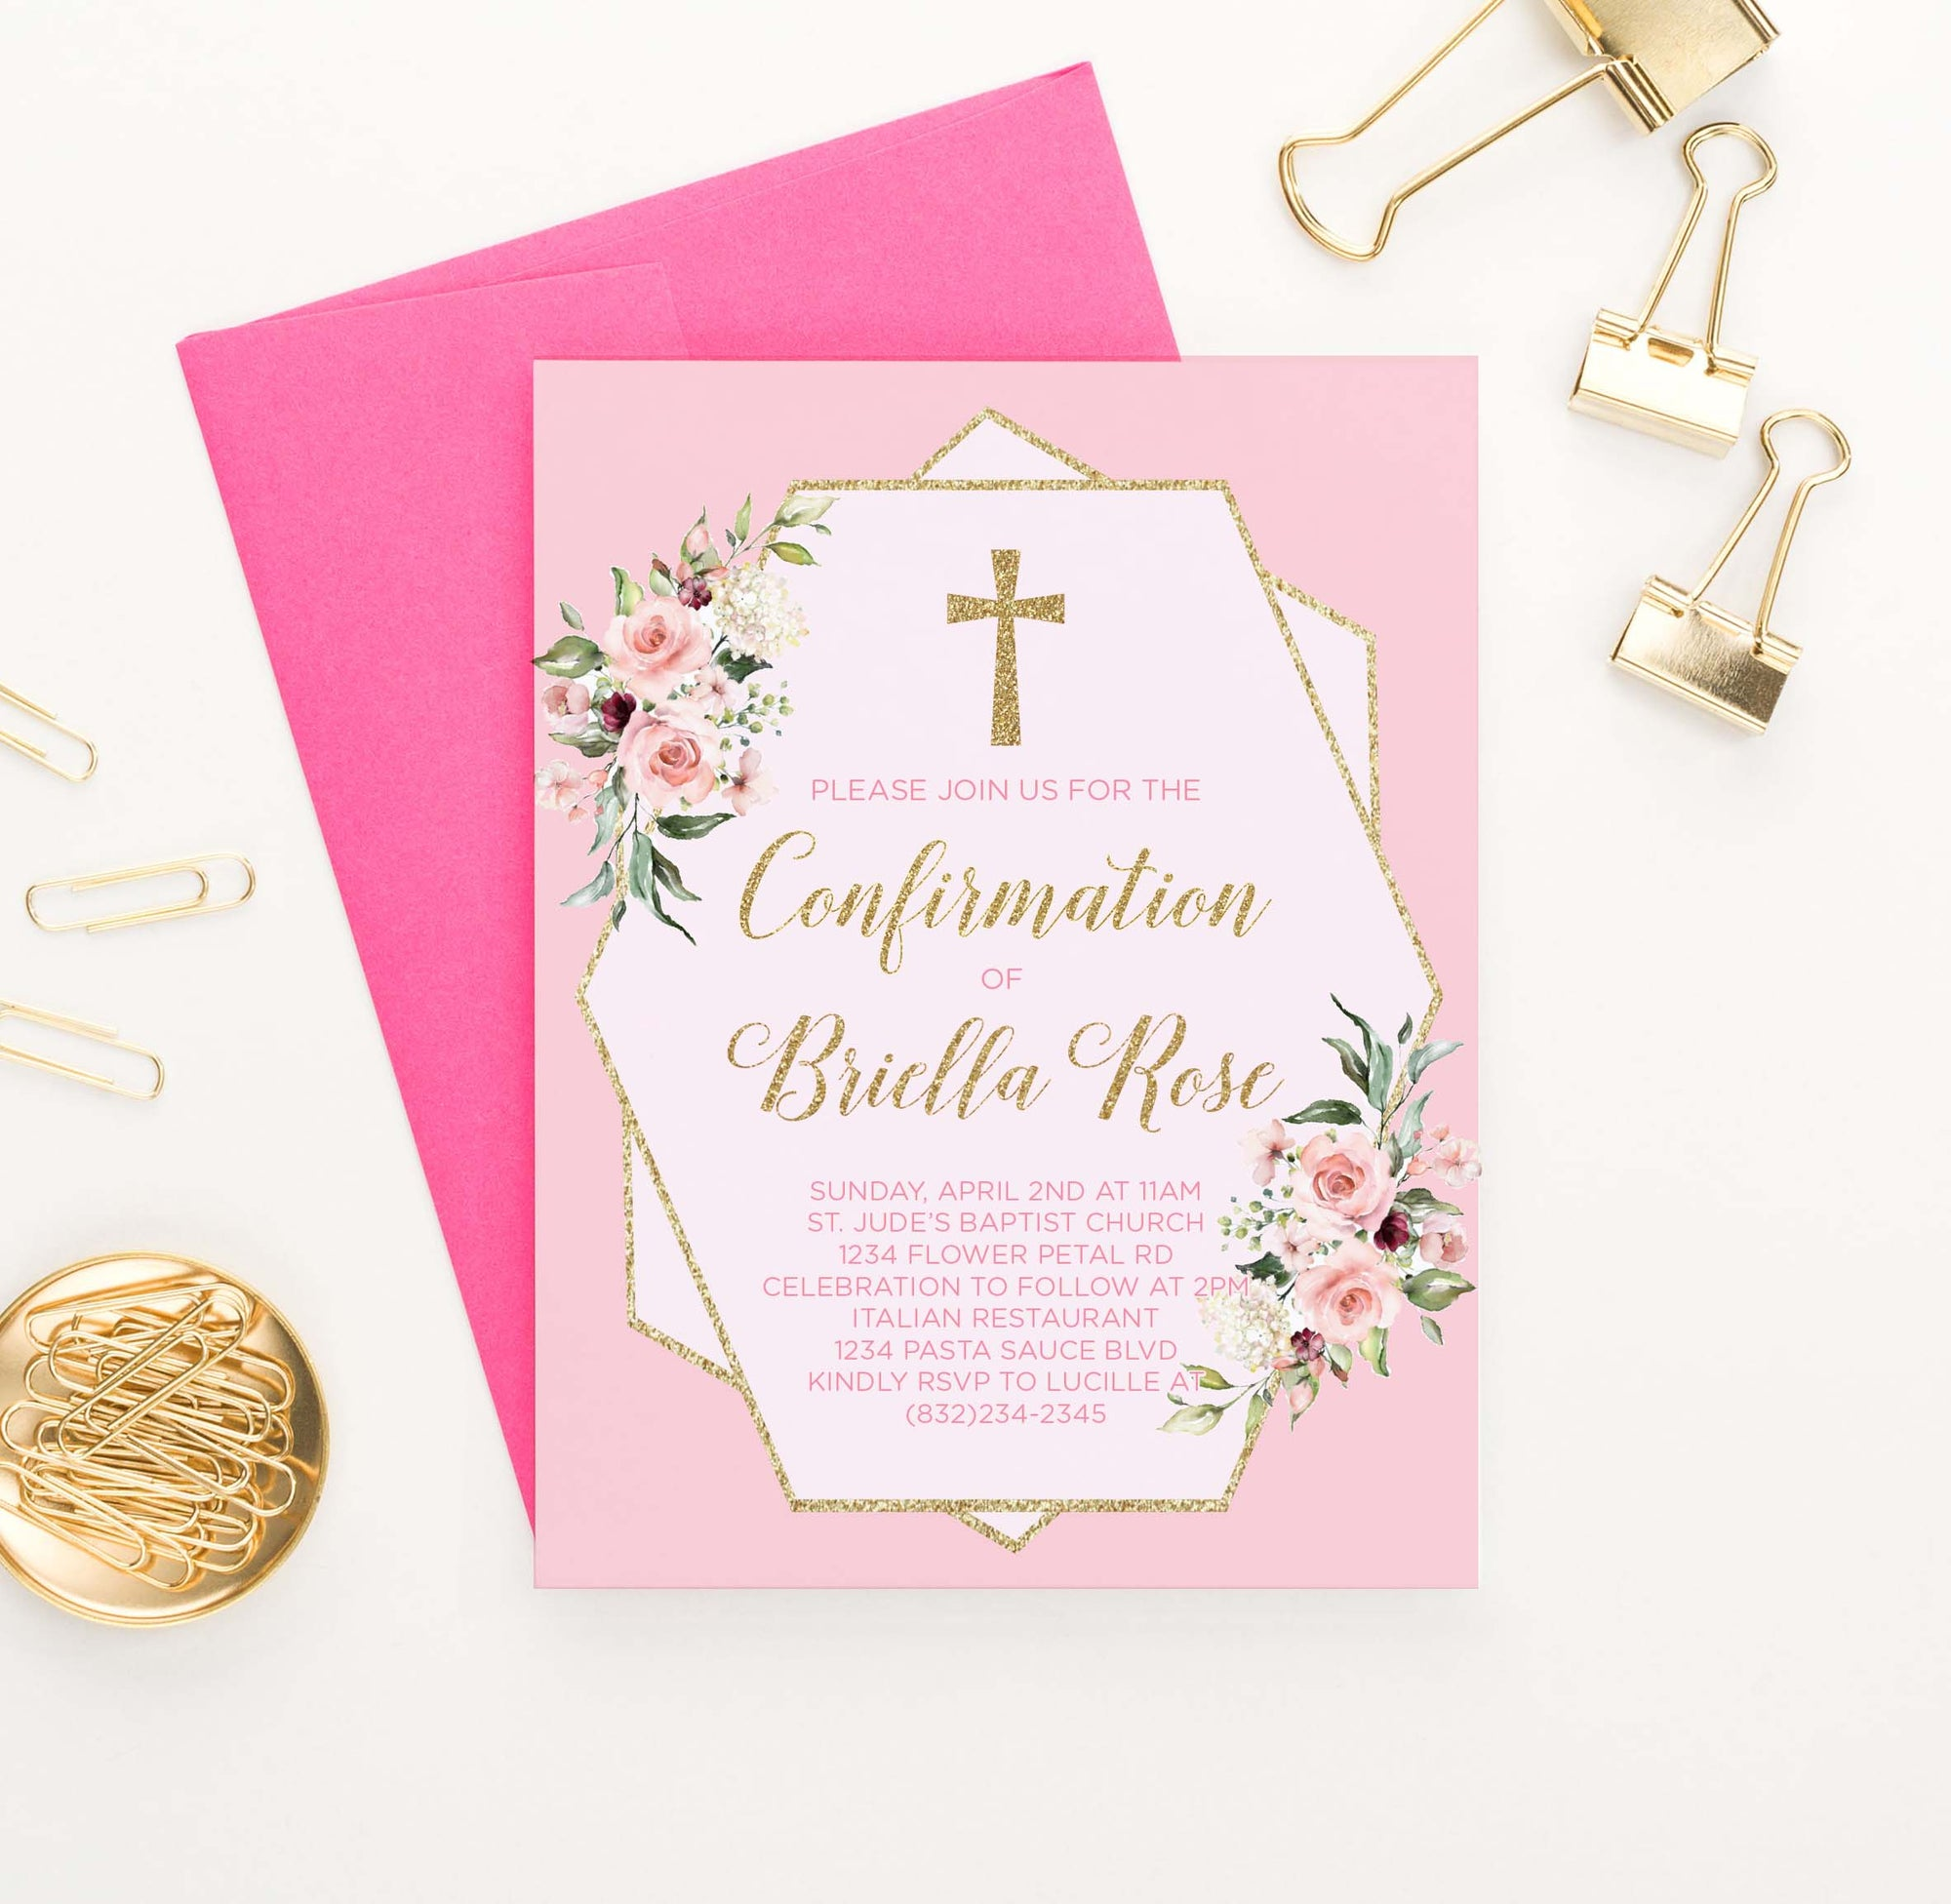 CONI019 elegant pink and gold confirmation invites for girls florals flowers glitter 1